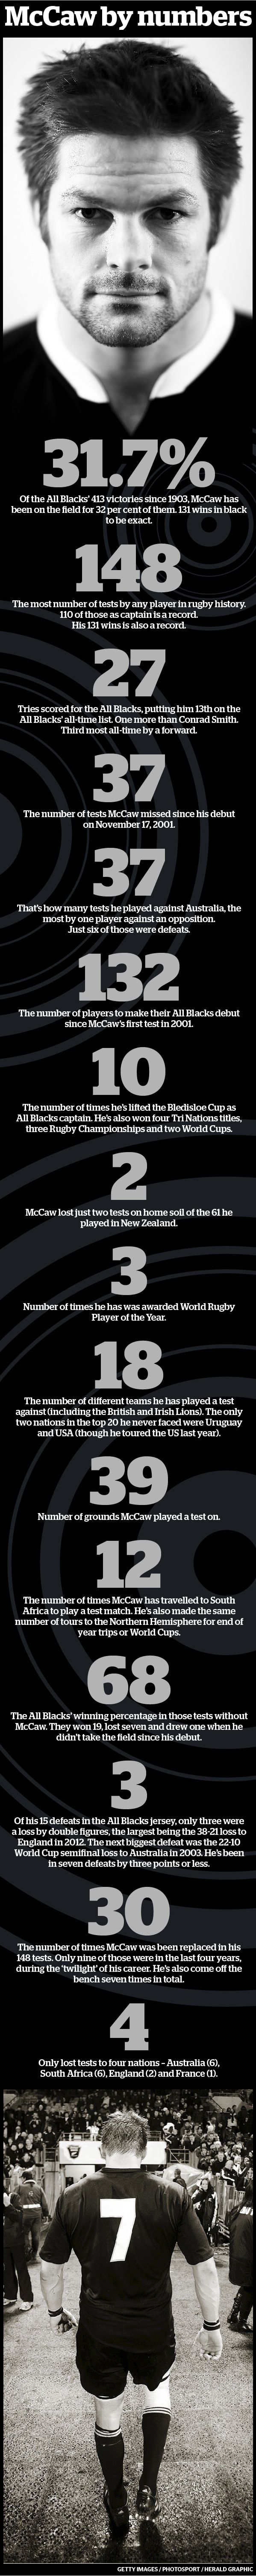 The Richie McCaw stats you won't believe - Sport - NZ Herald News